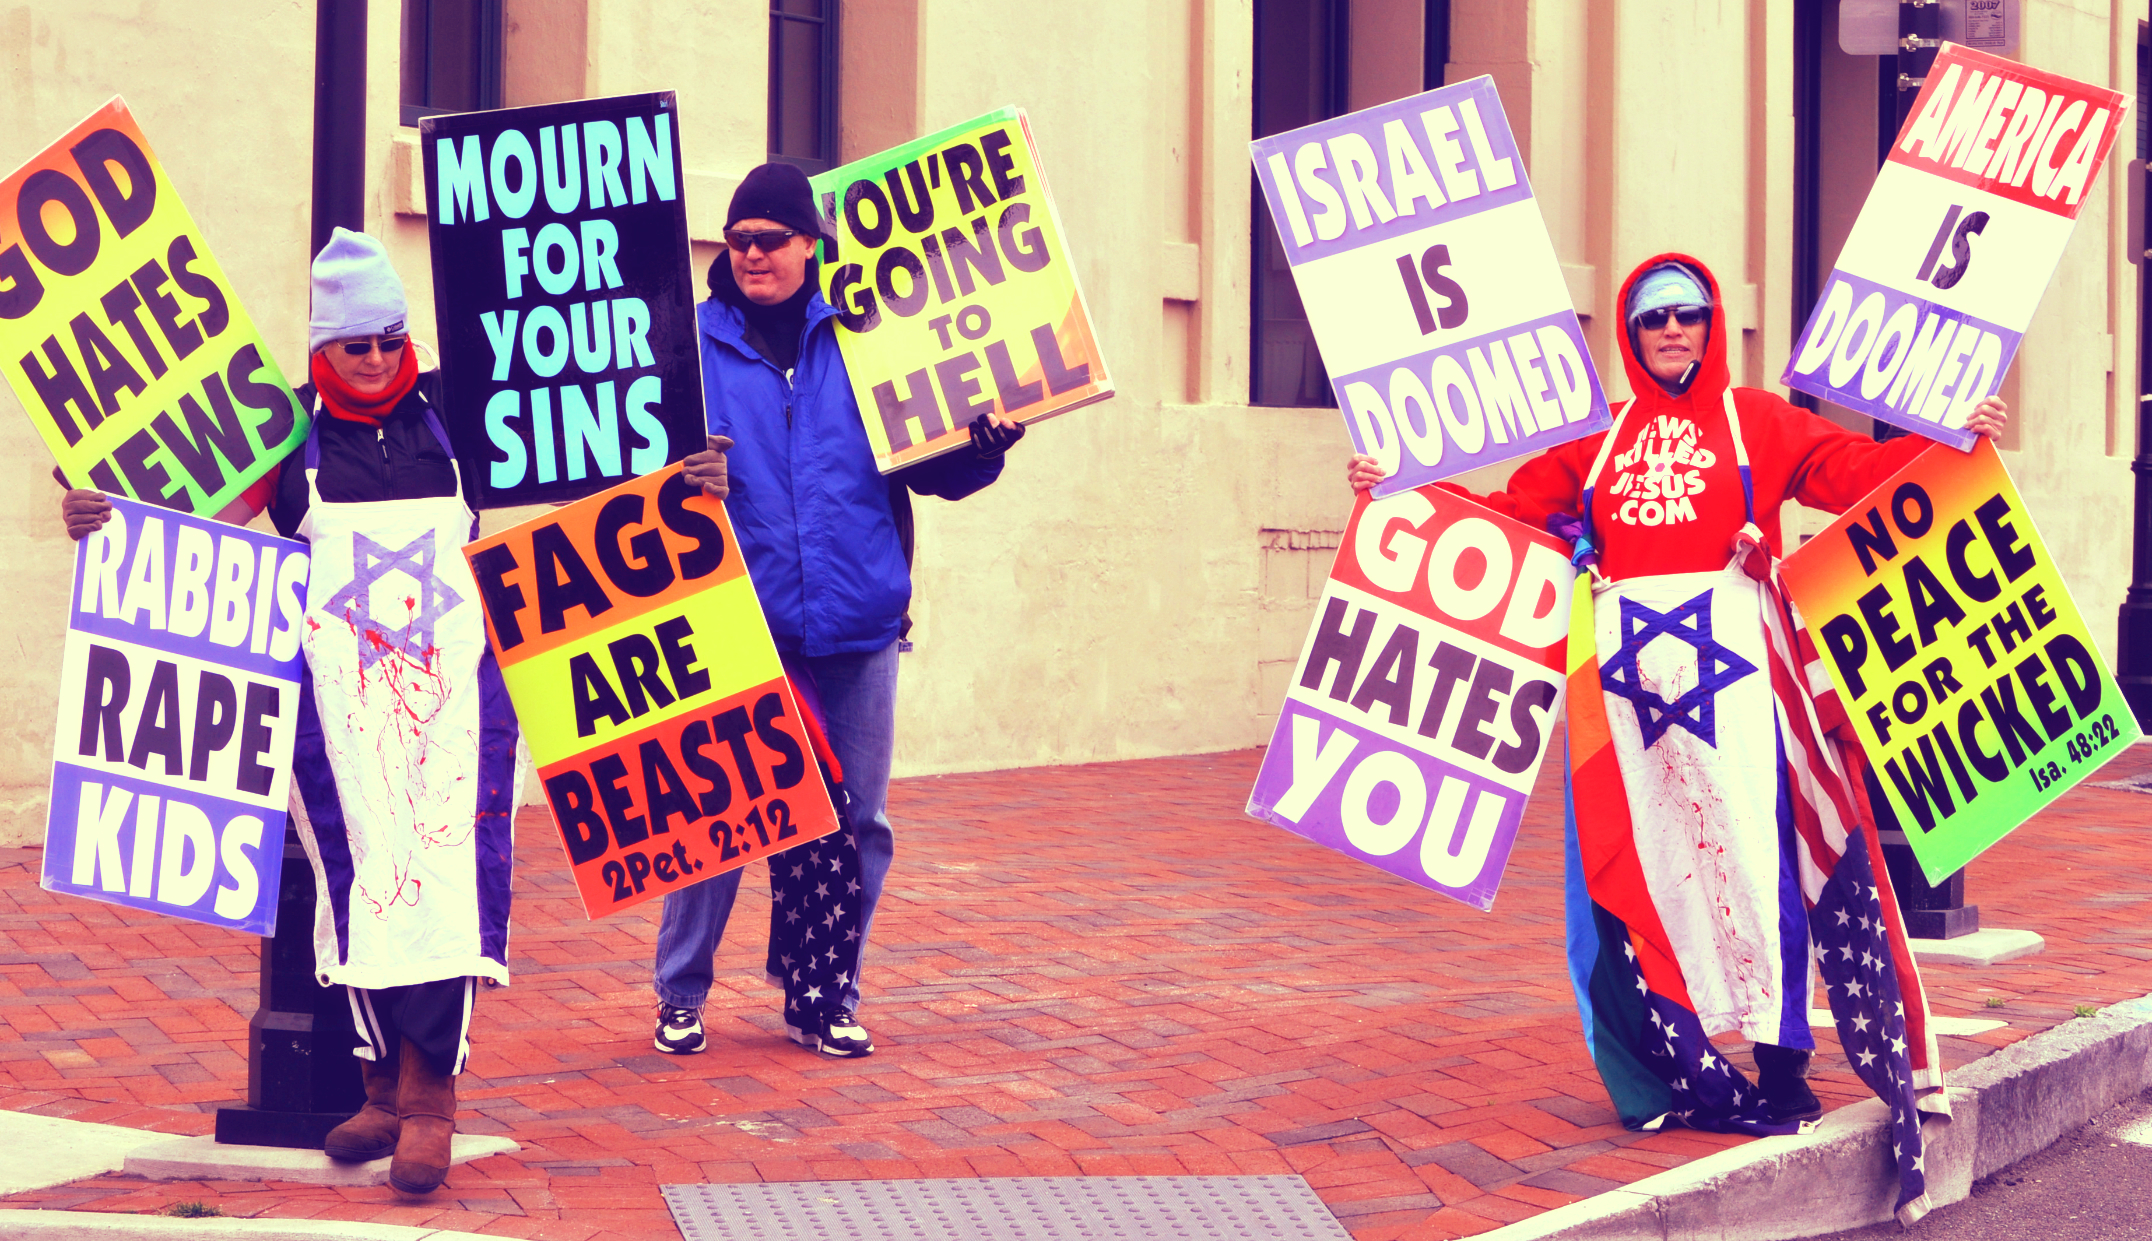 A Westboro Baptist Church protest. (Wikimedia Commons, alterations by Cody Ray Shafer).